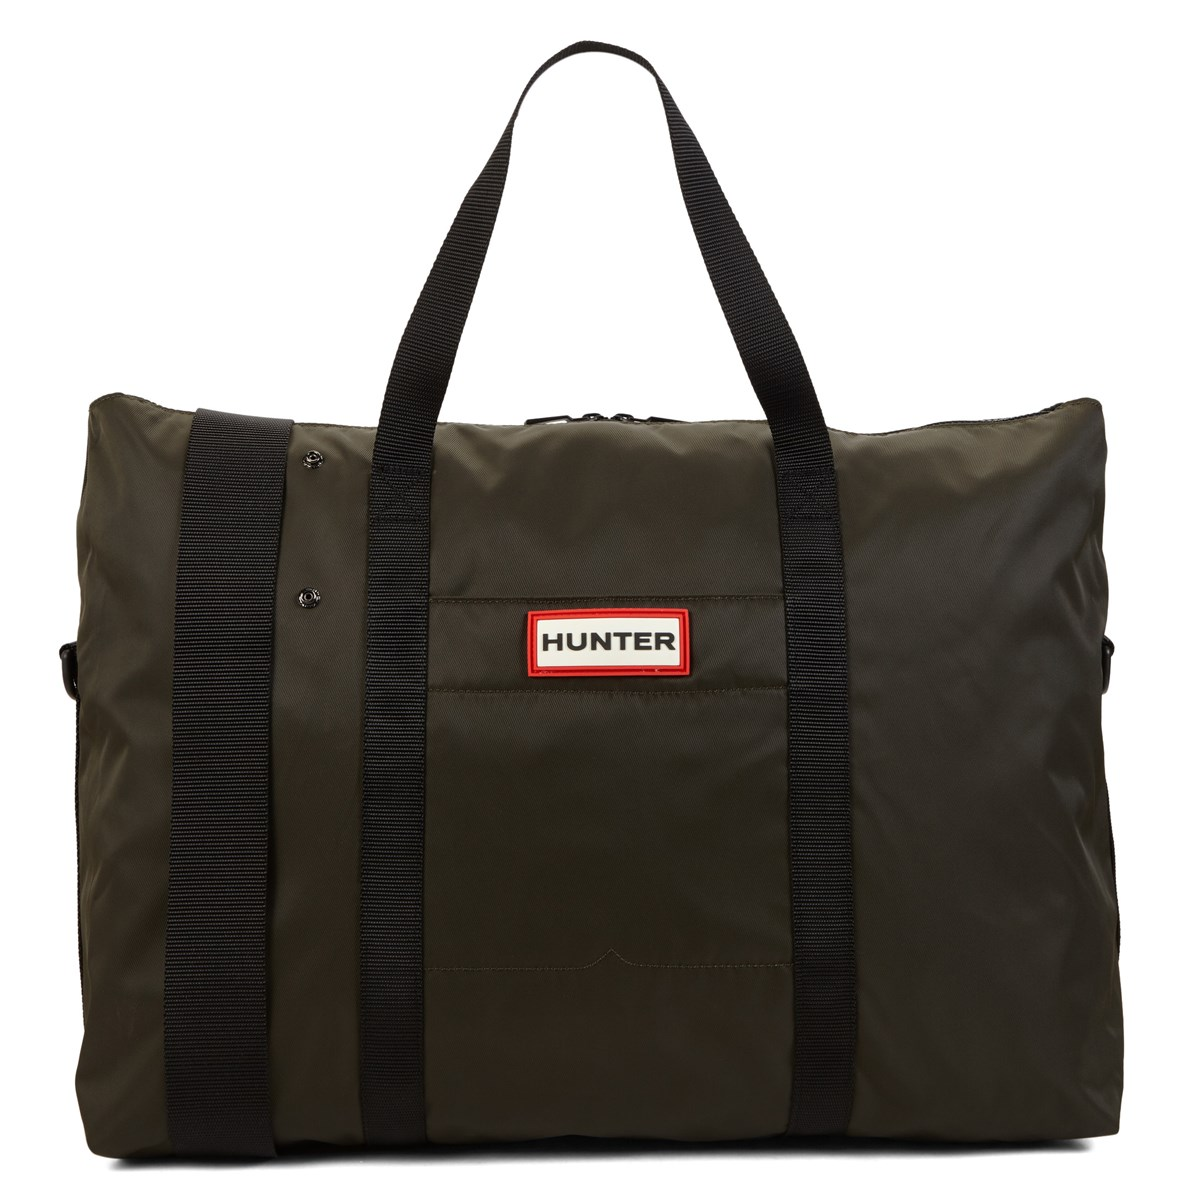 6e974f30ac Original Nylon Weekender Green Tote Bag. Previous. default view · ALT1 ·  ALT2